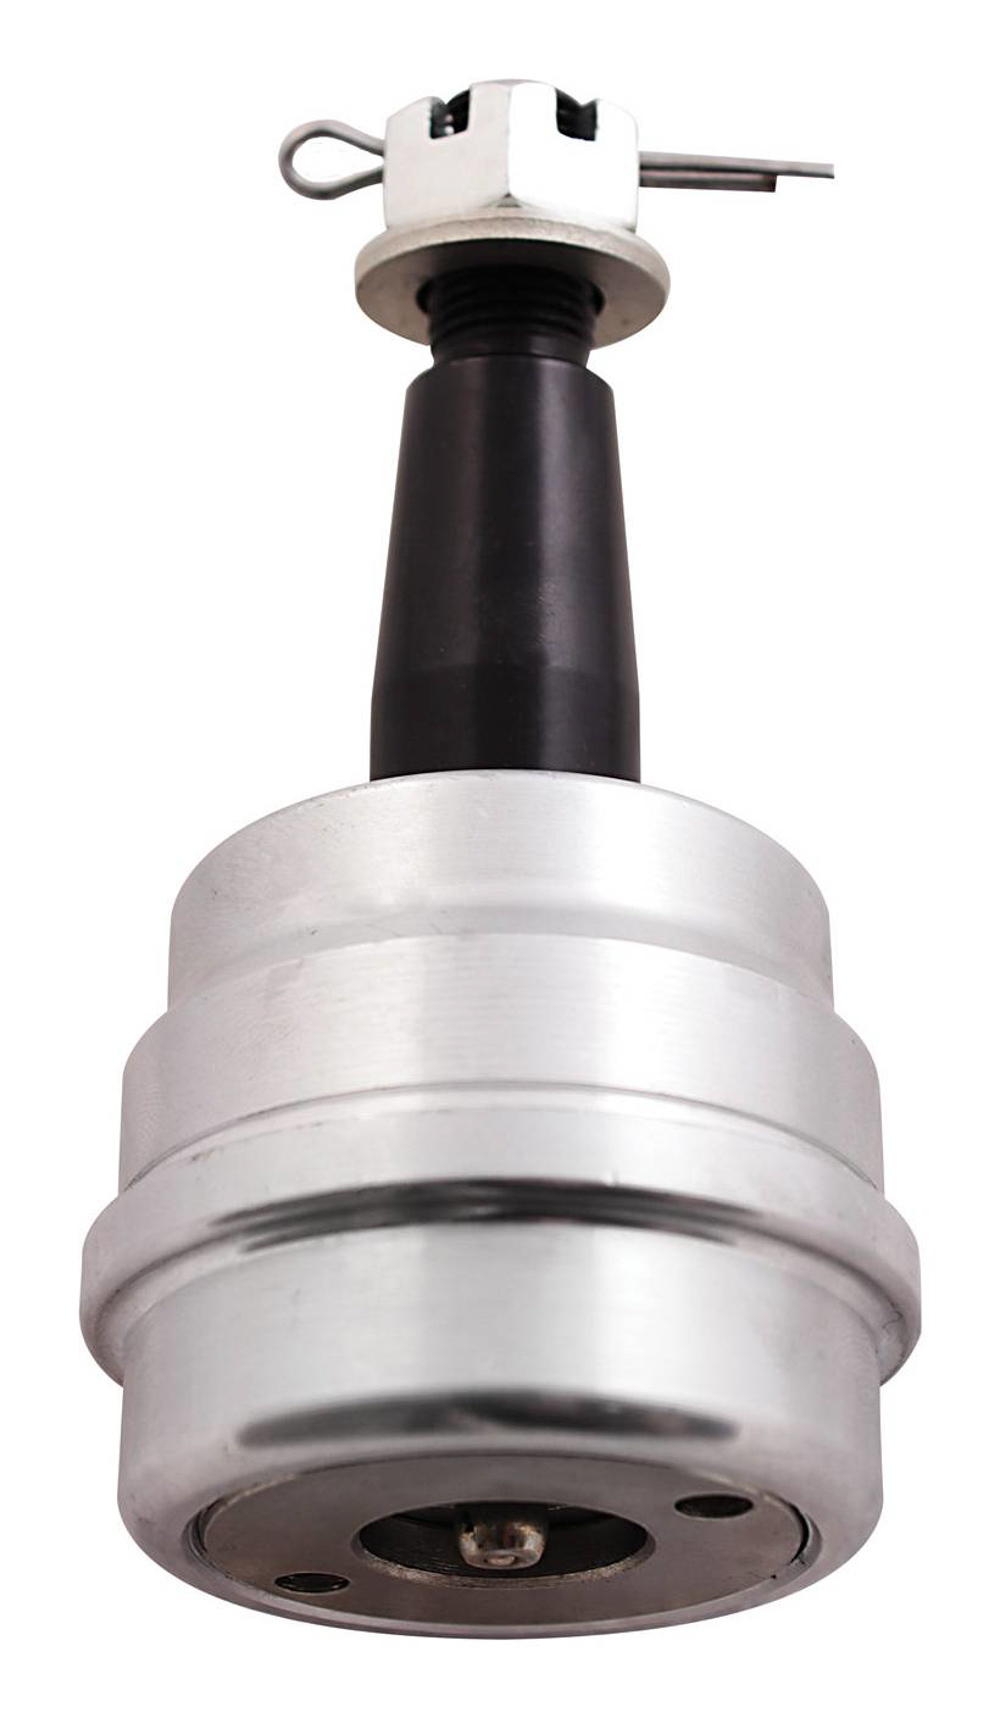 QA1 1210-110 Ball Joint, Greasable, Lower, Press-In, 1.500 in/ft Taper, 3.396 in Stud, 1/2-20 in Thread, Steel, Each